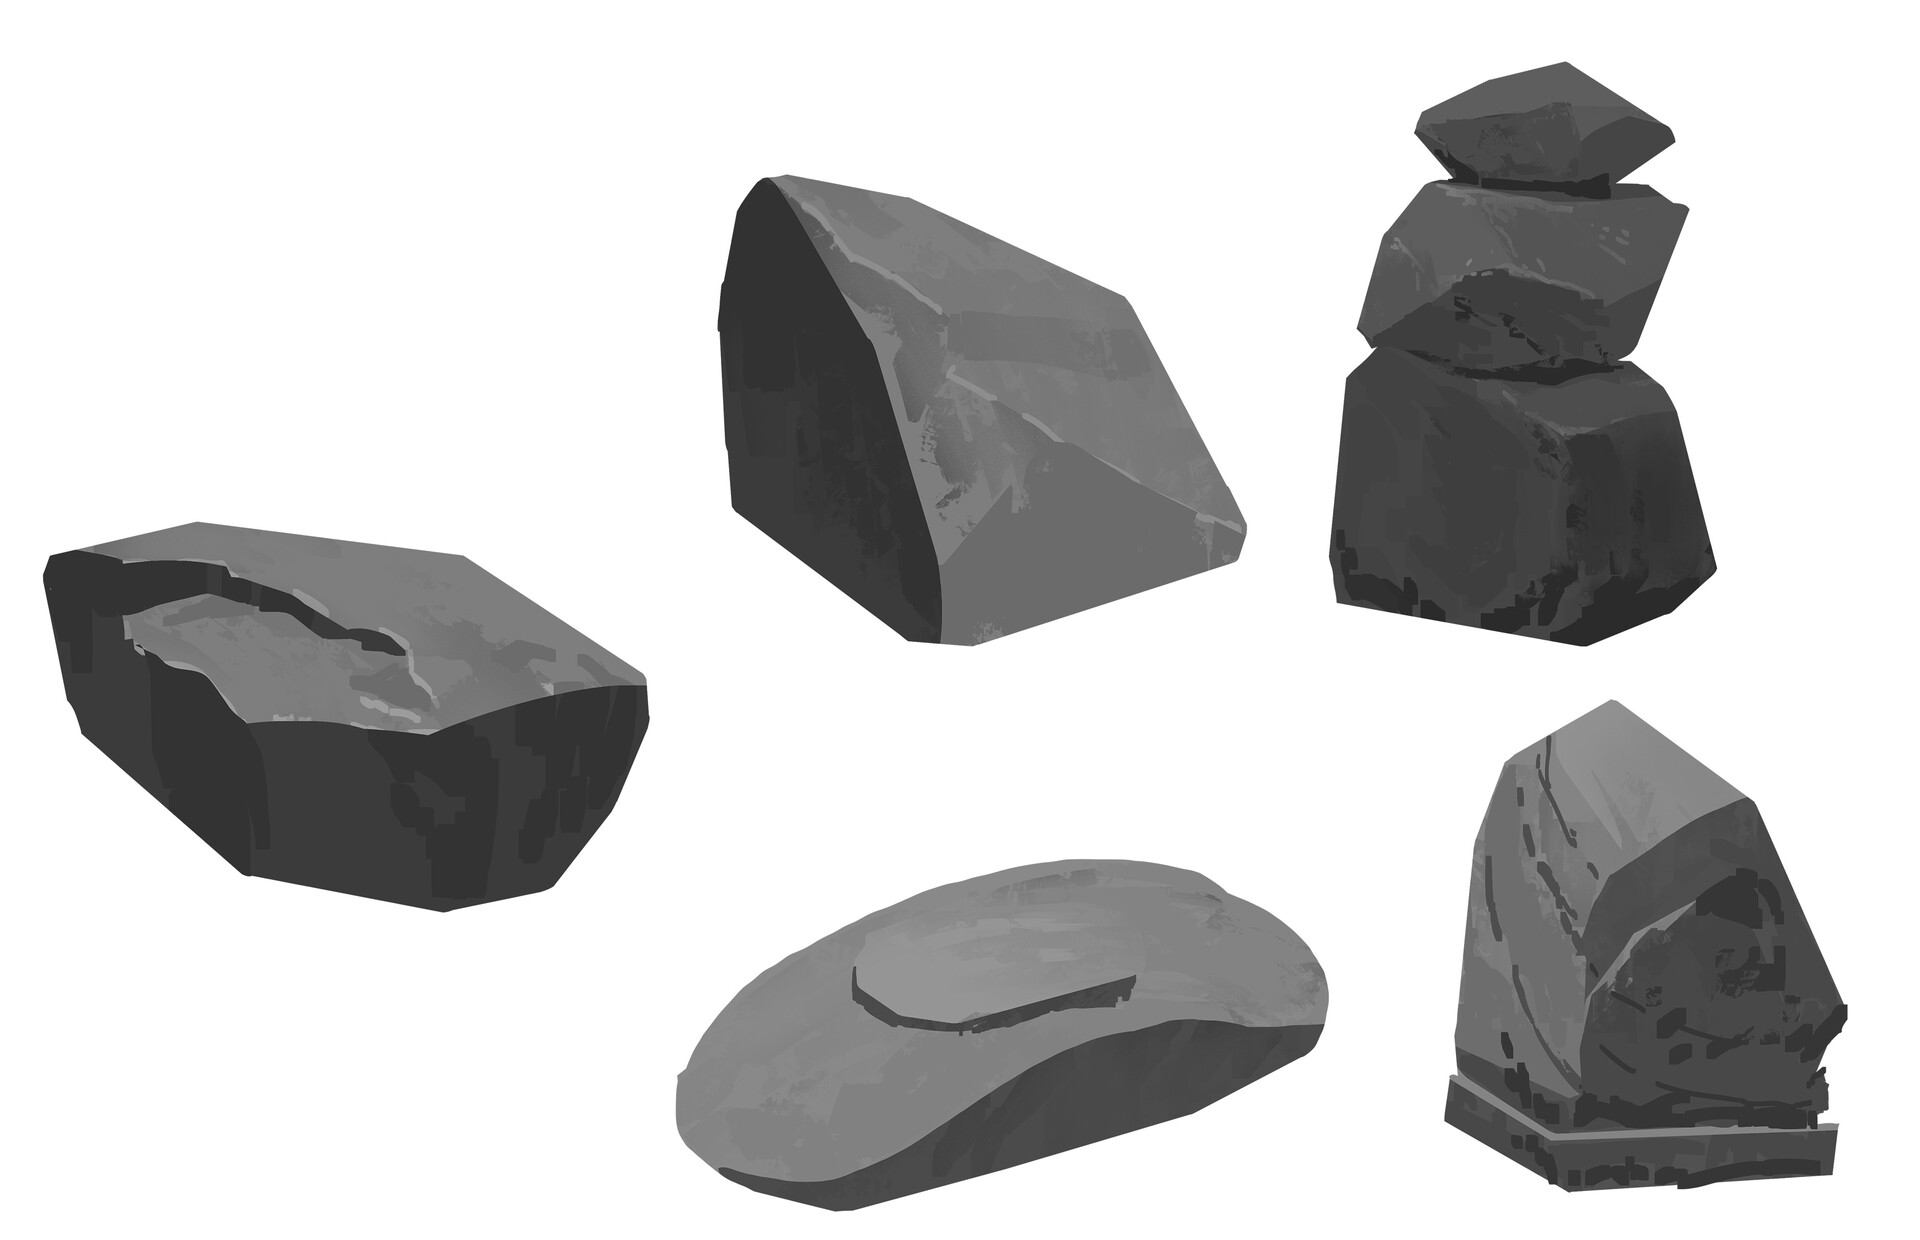 Harrison yinfaowei rock studies 1